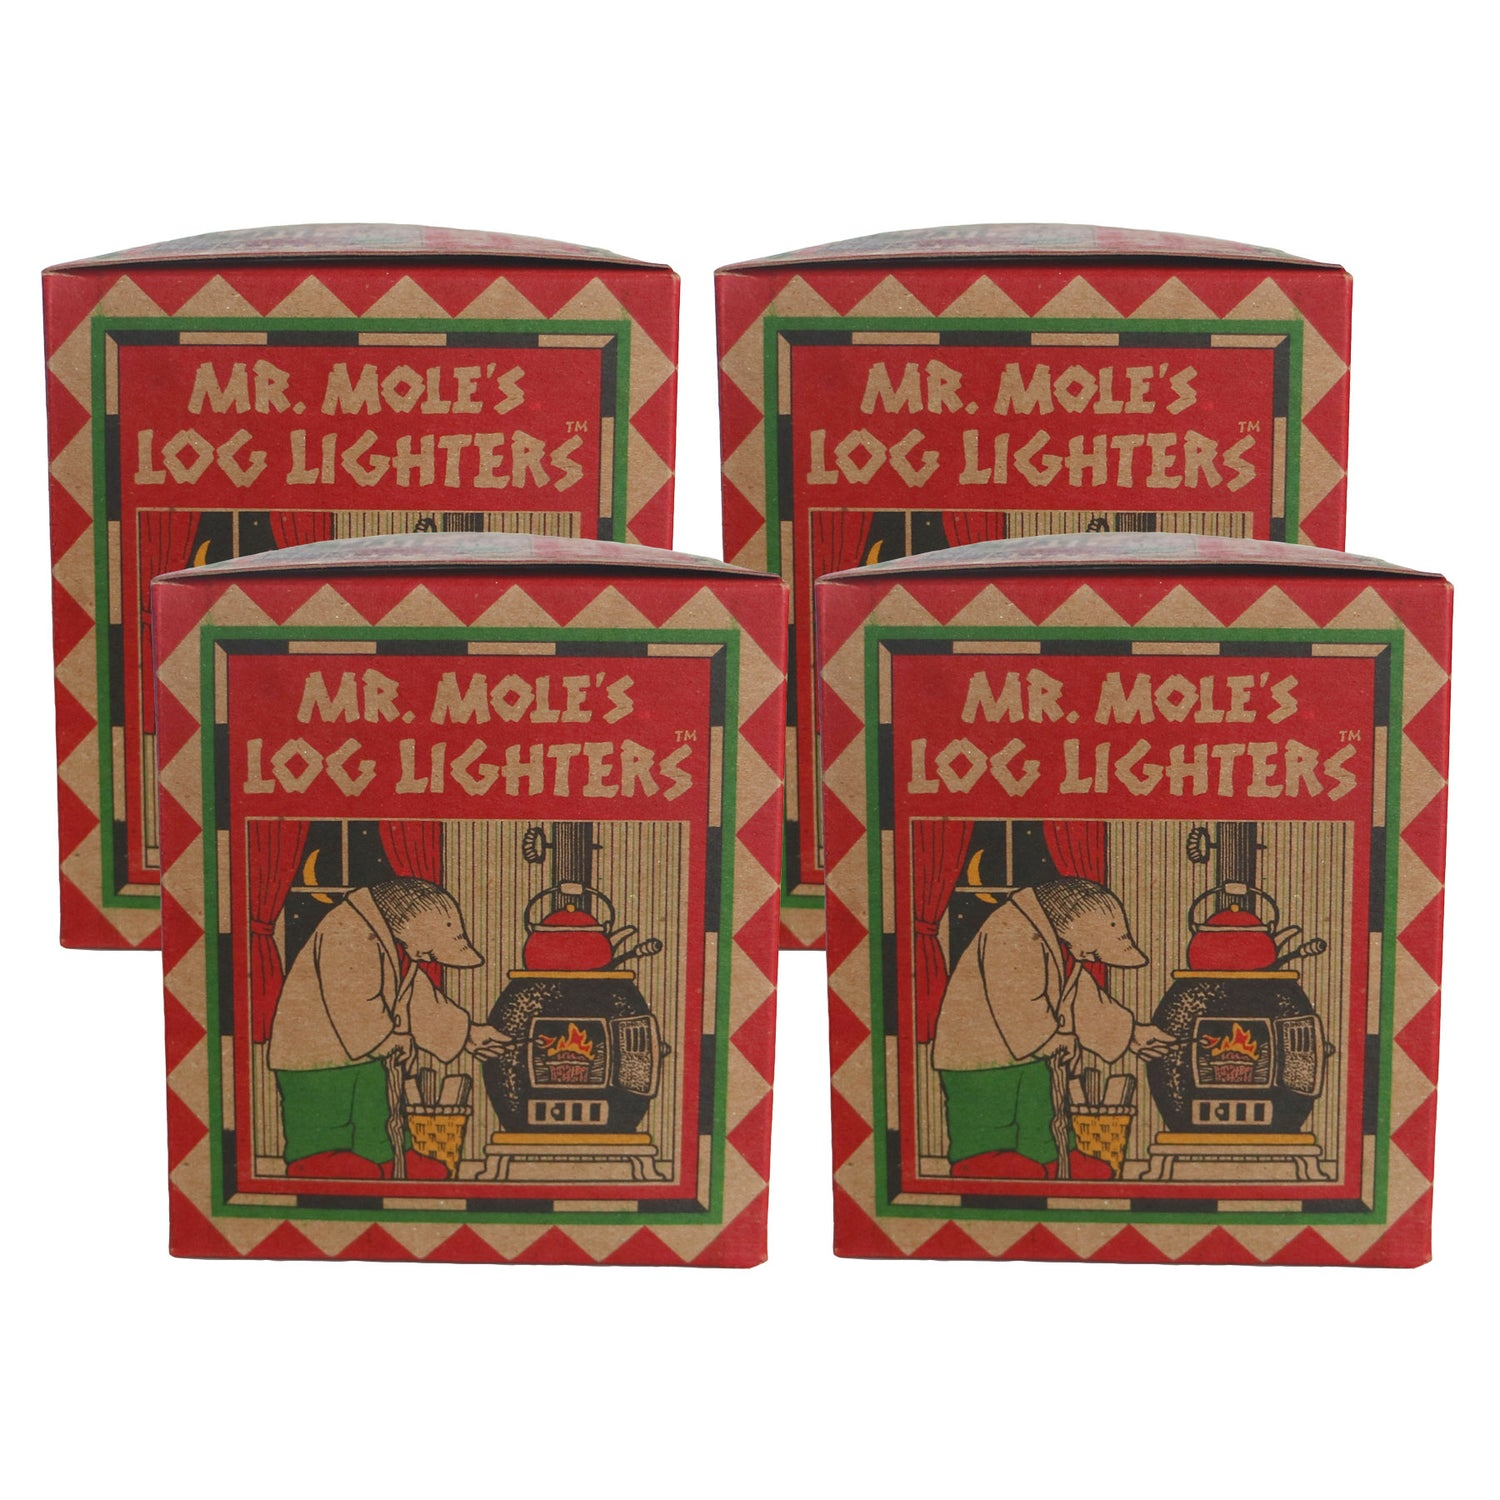 Mr. Mole's Log Lighters - Fire Starters - Mole Hollow Candles